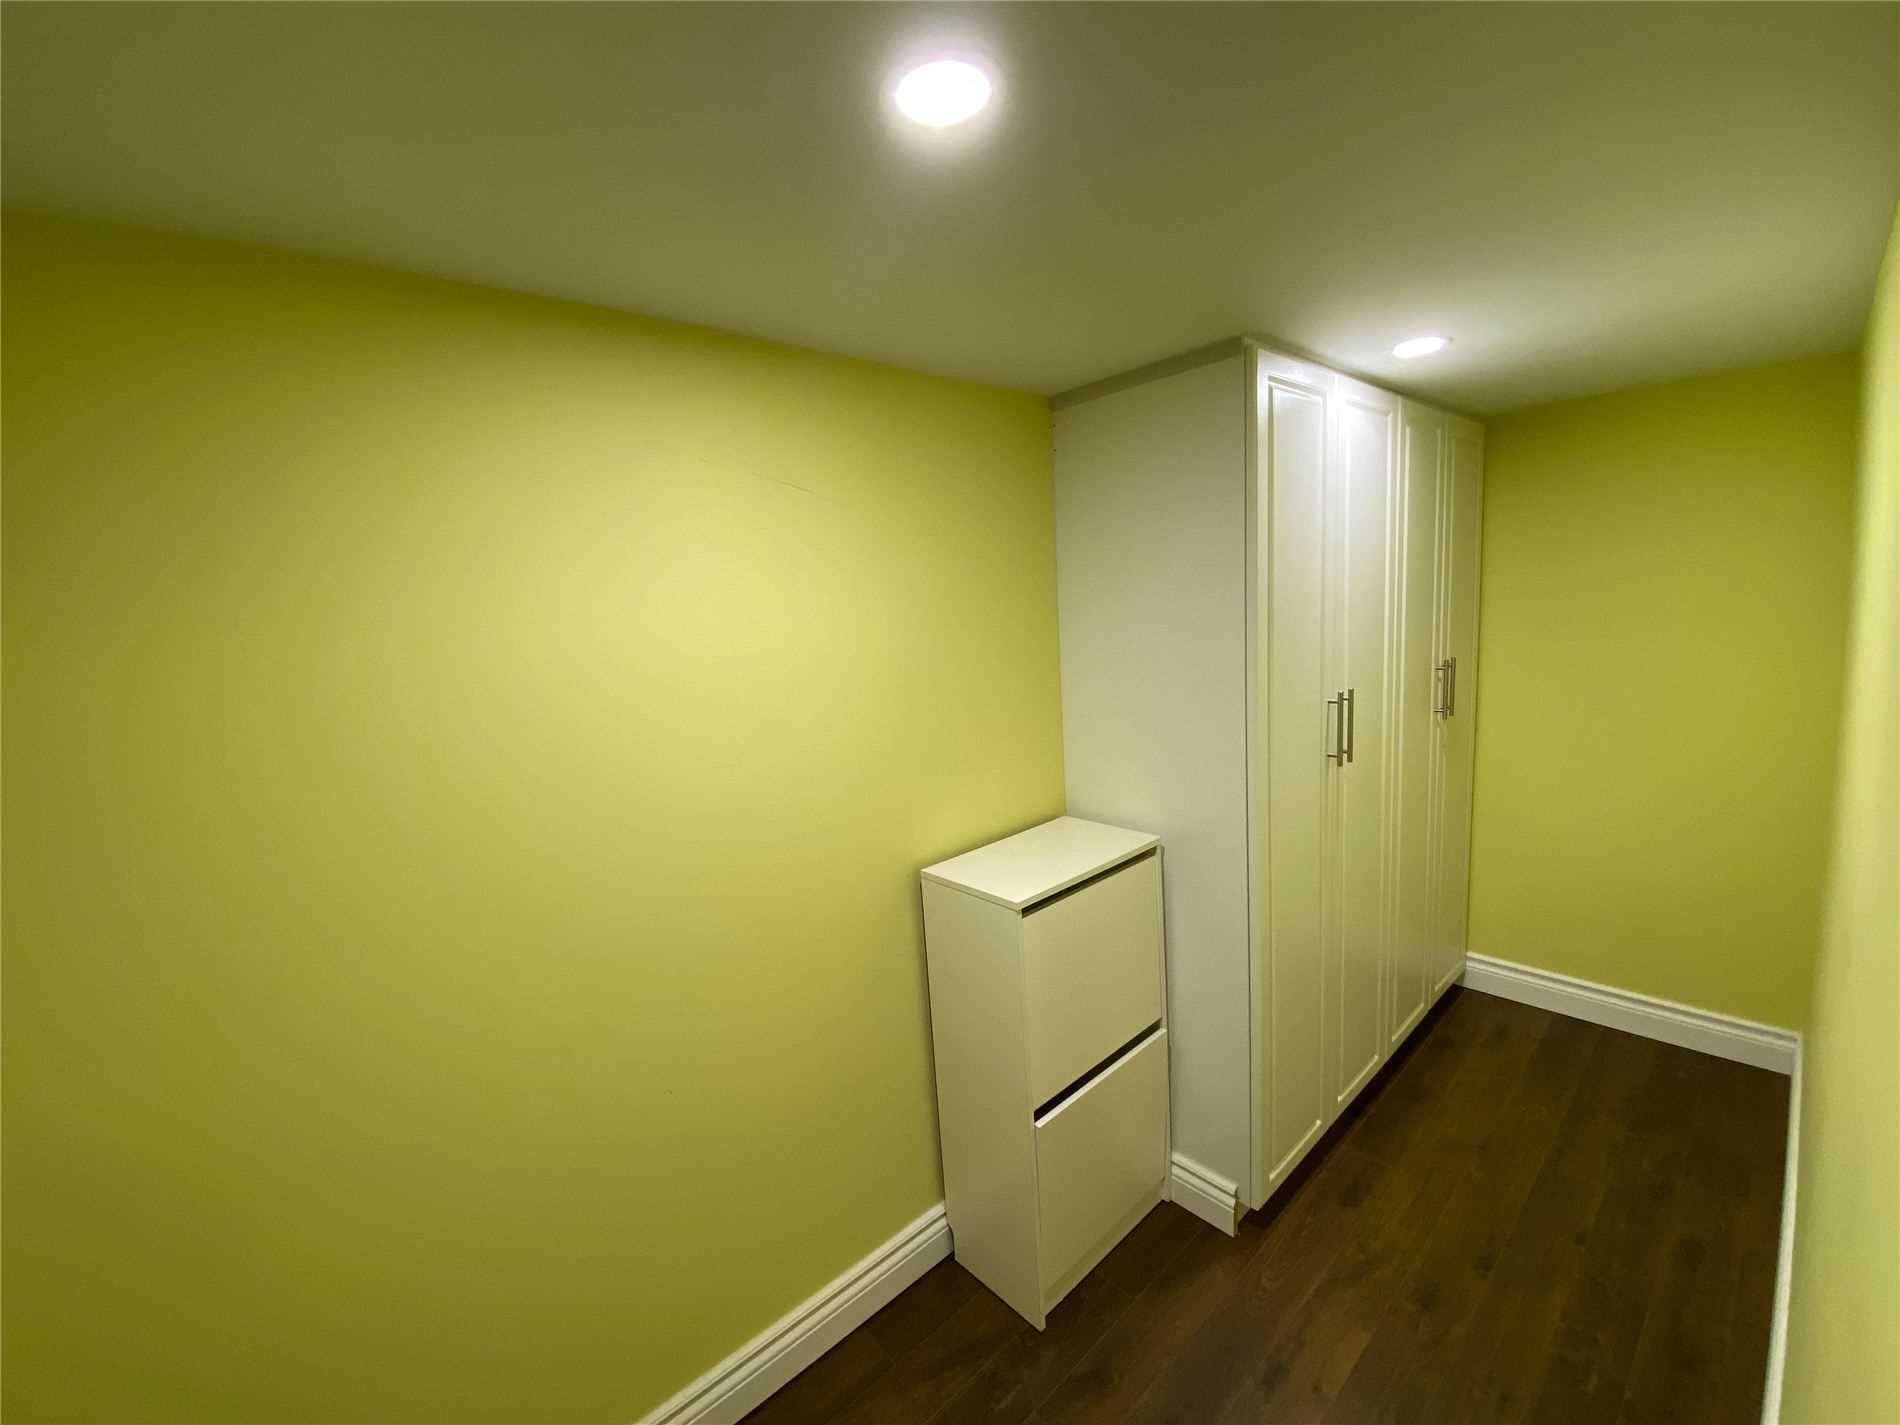 Image 5 of 8 showing inside of 0 Bedroom Semi-Detached Apartment for Lease at 2 Maroon Dr, Richmond Hill L4E5B4